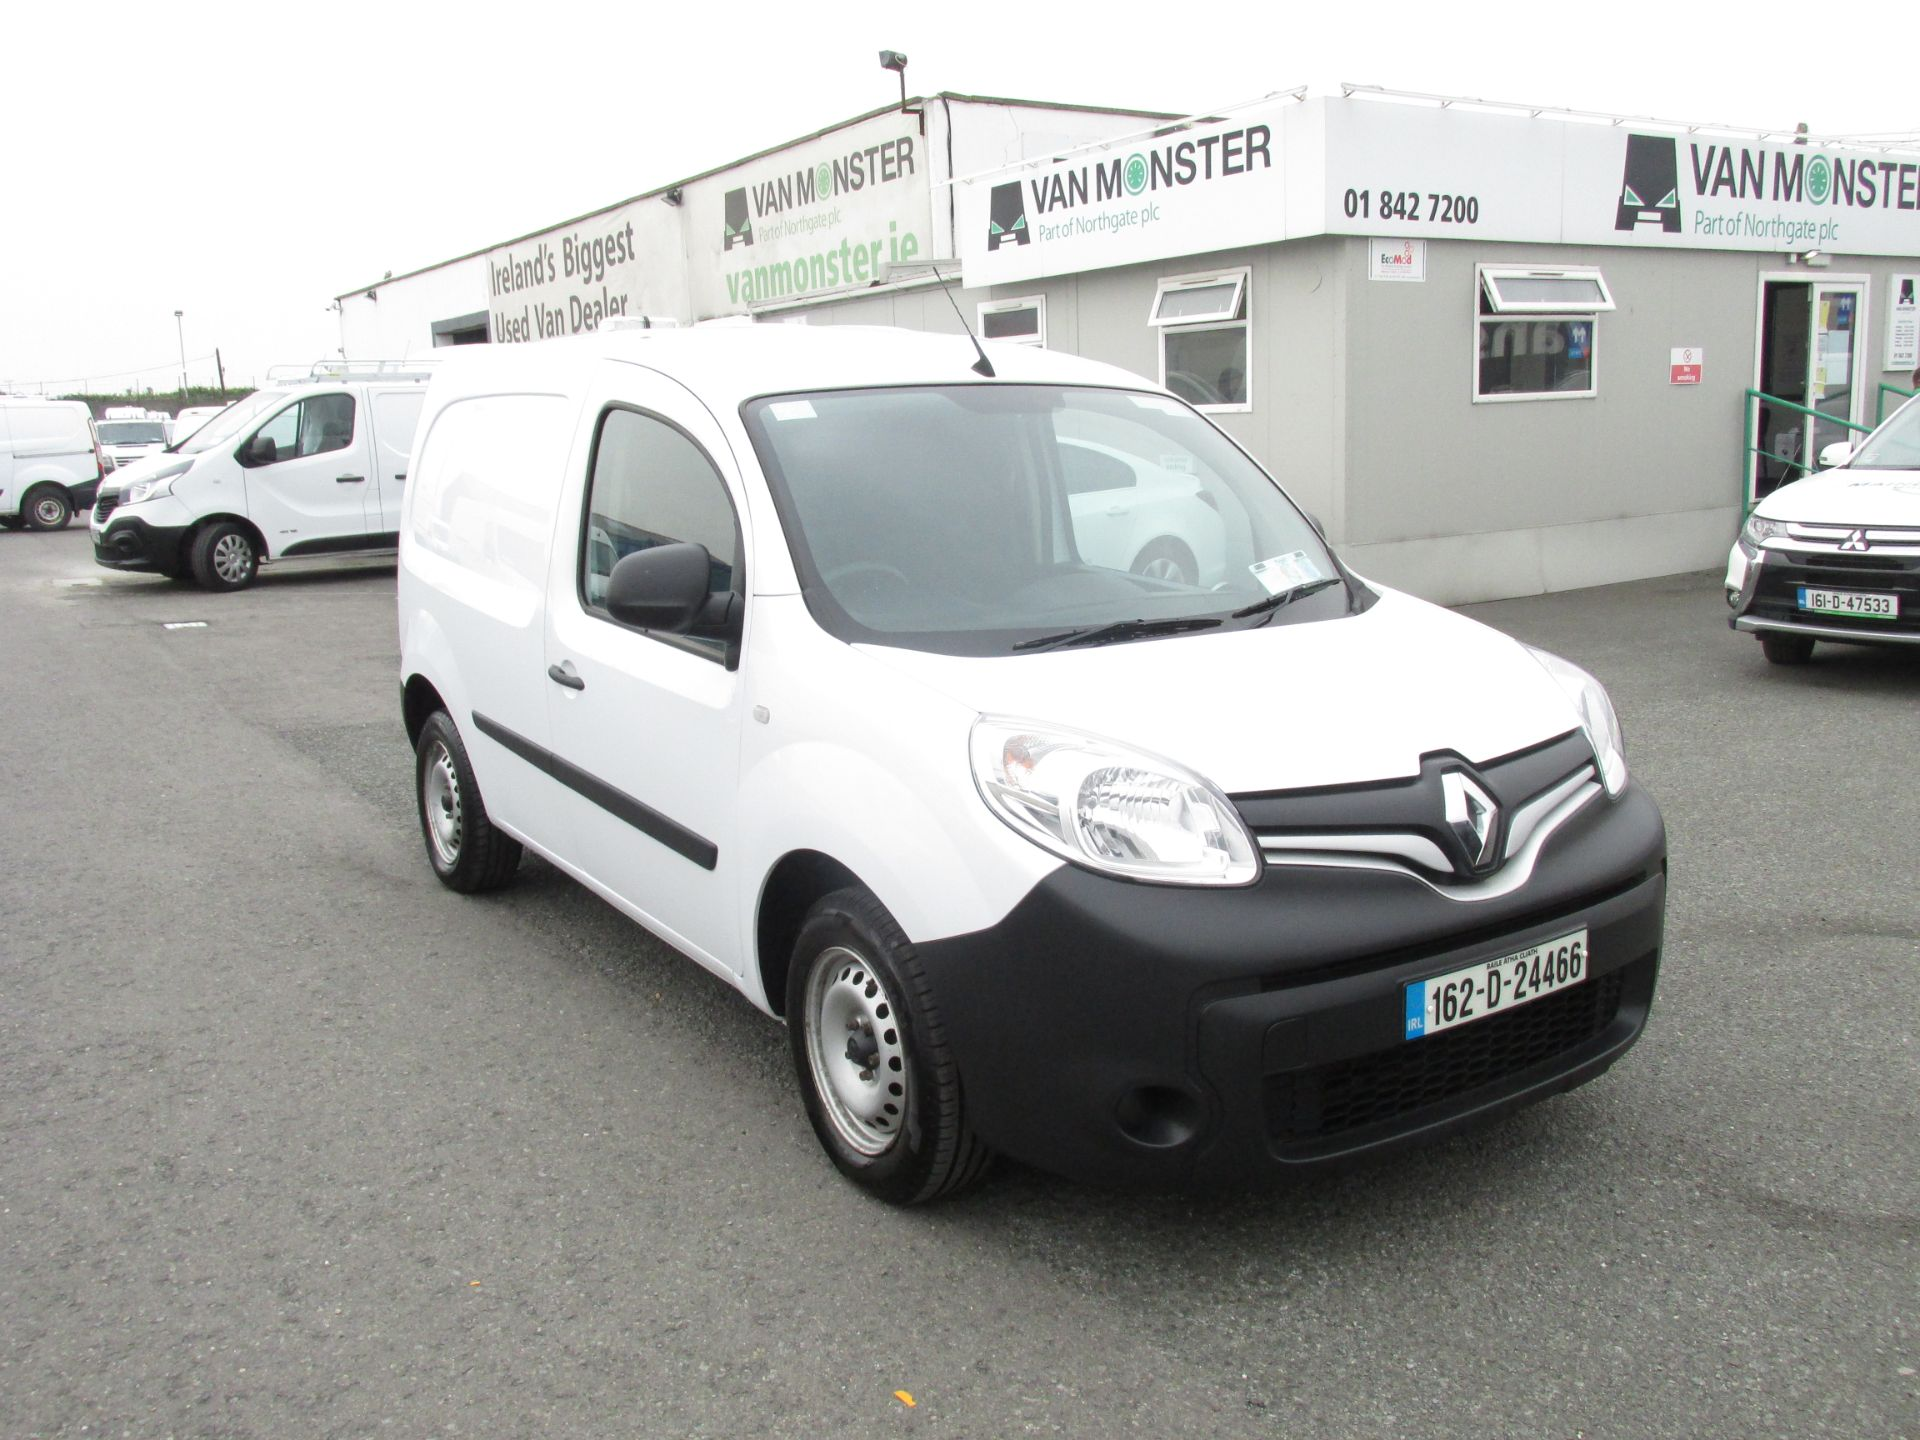 2016 Renault Kangoo ML19 ENERGY DCI 75 BUSINESS 2D (162D24466)